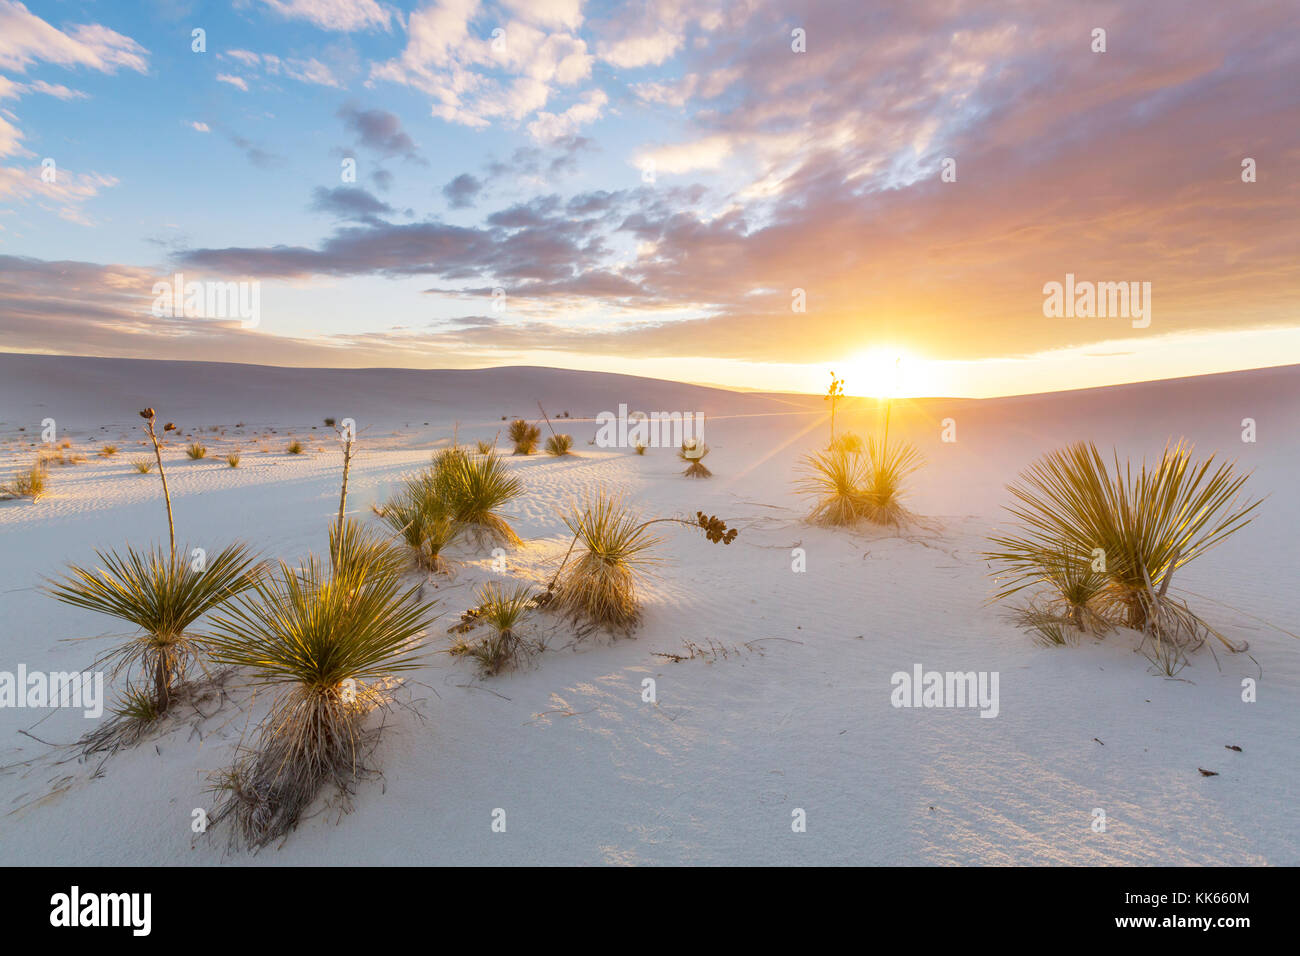 Unusual White Sand Dunes at White Sands National Monument, New Mexico, USA - Stock Image